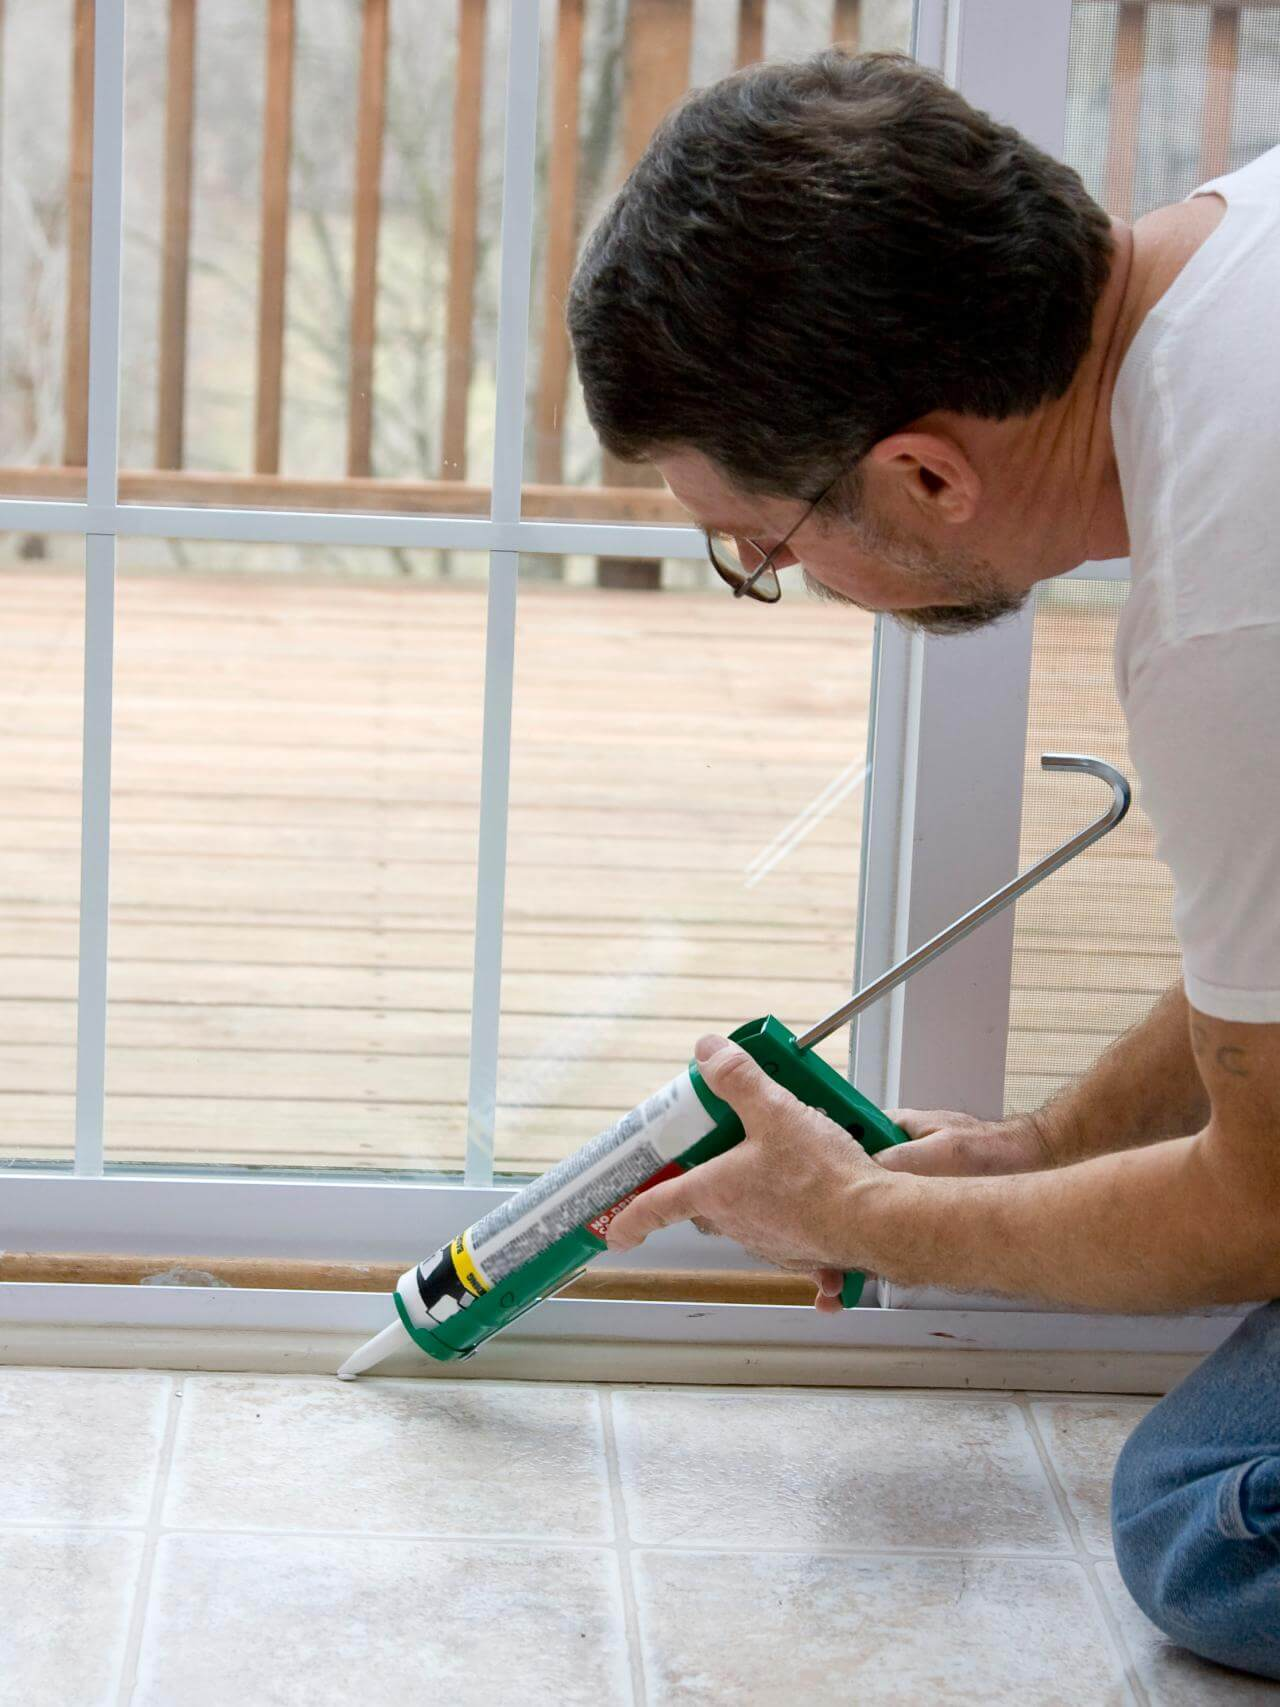 Seal up every nook and cranny in your home to prevent an infestation from occuring